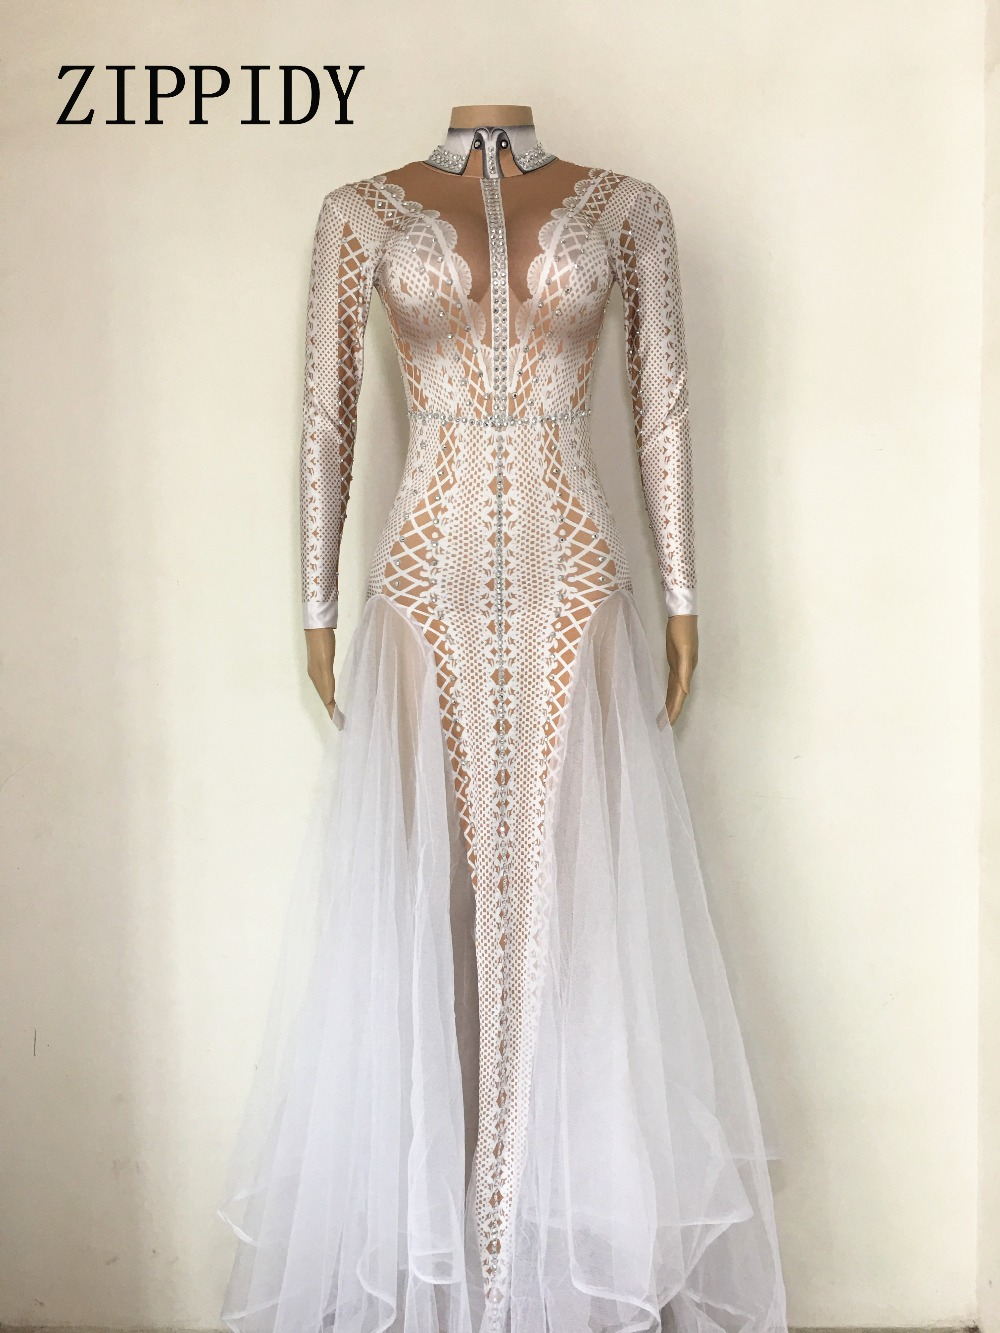 Sexy Sparkly Stone Dress Women Summer Party Costume Stage Performance Wear Dance Singer Rhinestones Ladies Long